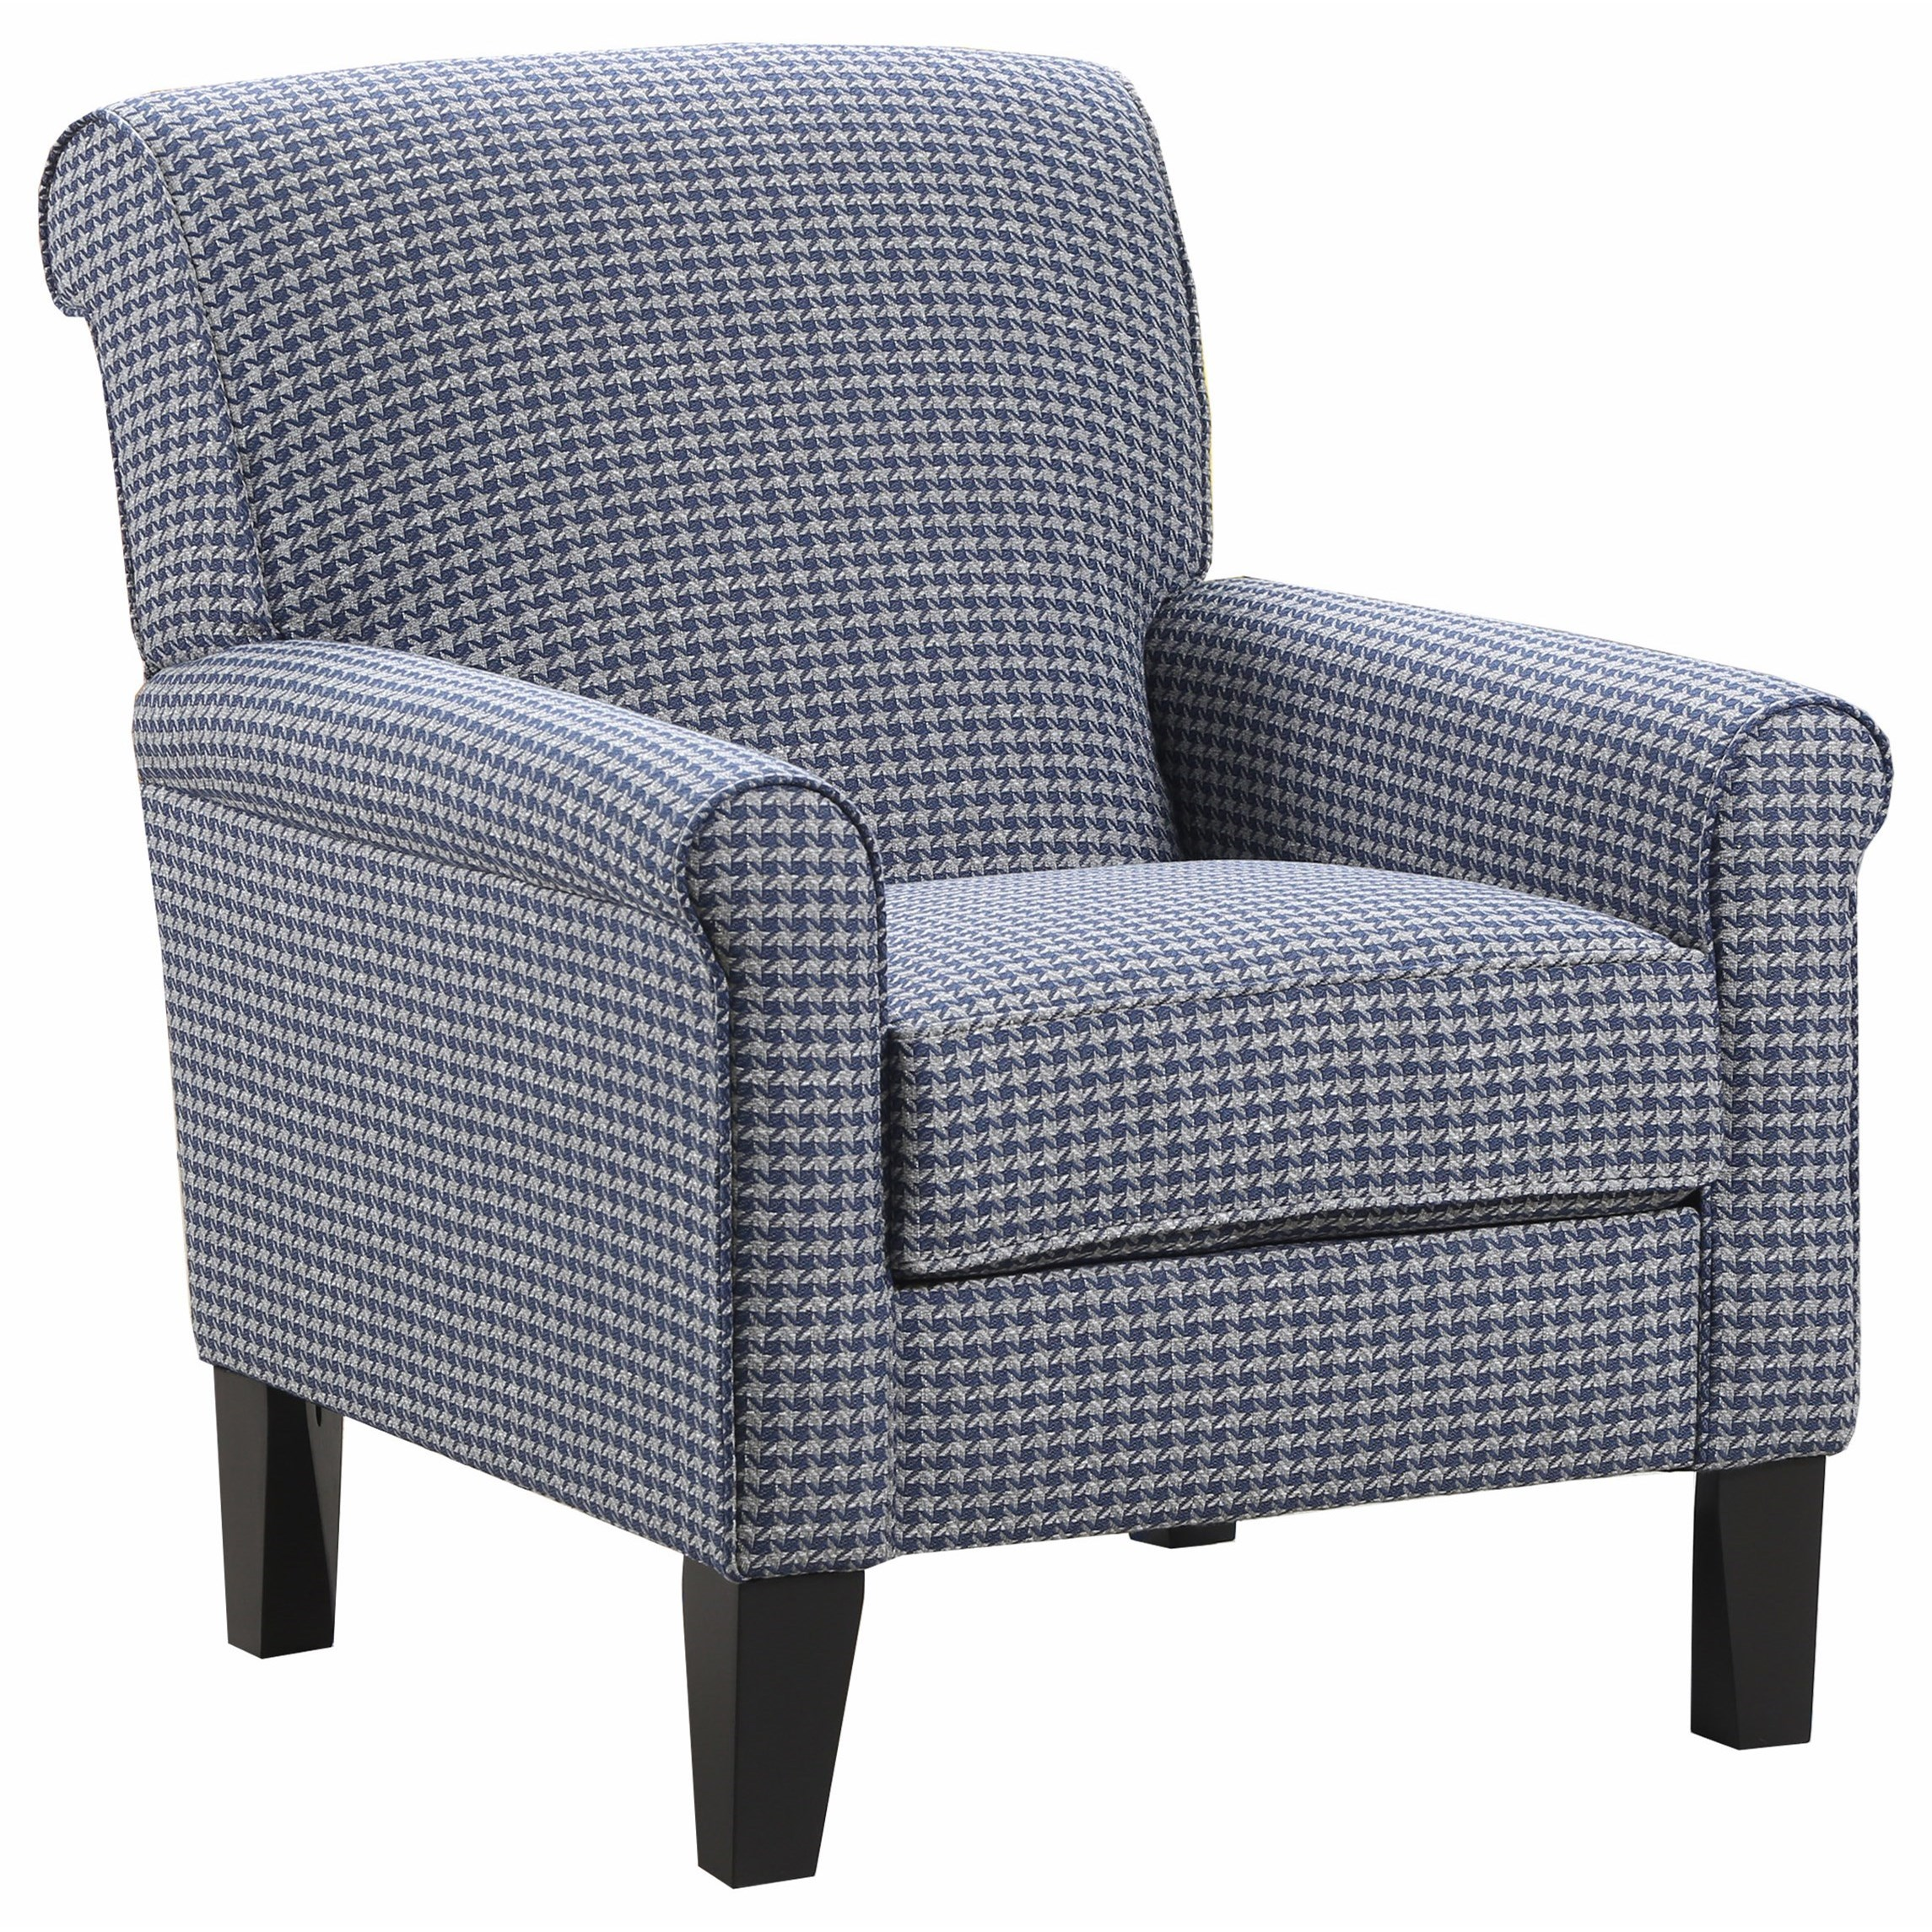 2160 Accent Chair by United Furniture Industries at Dream Home Interiors